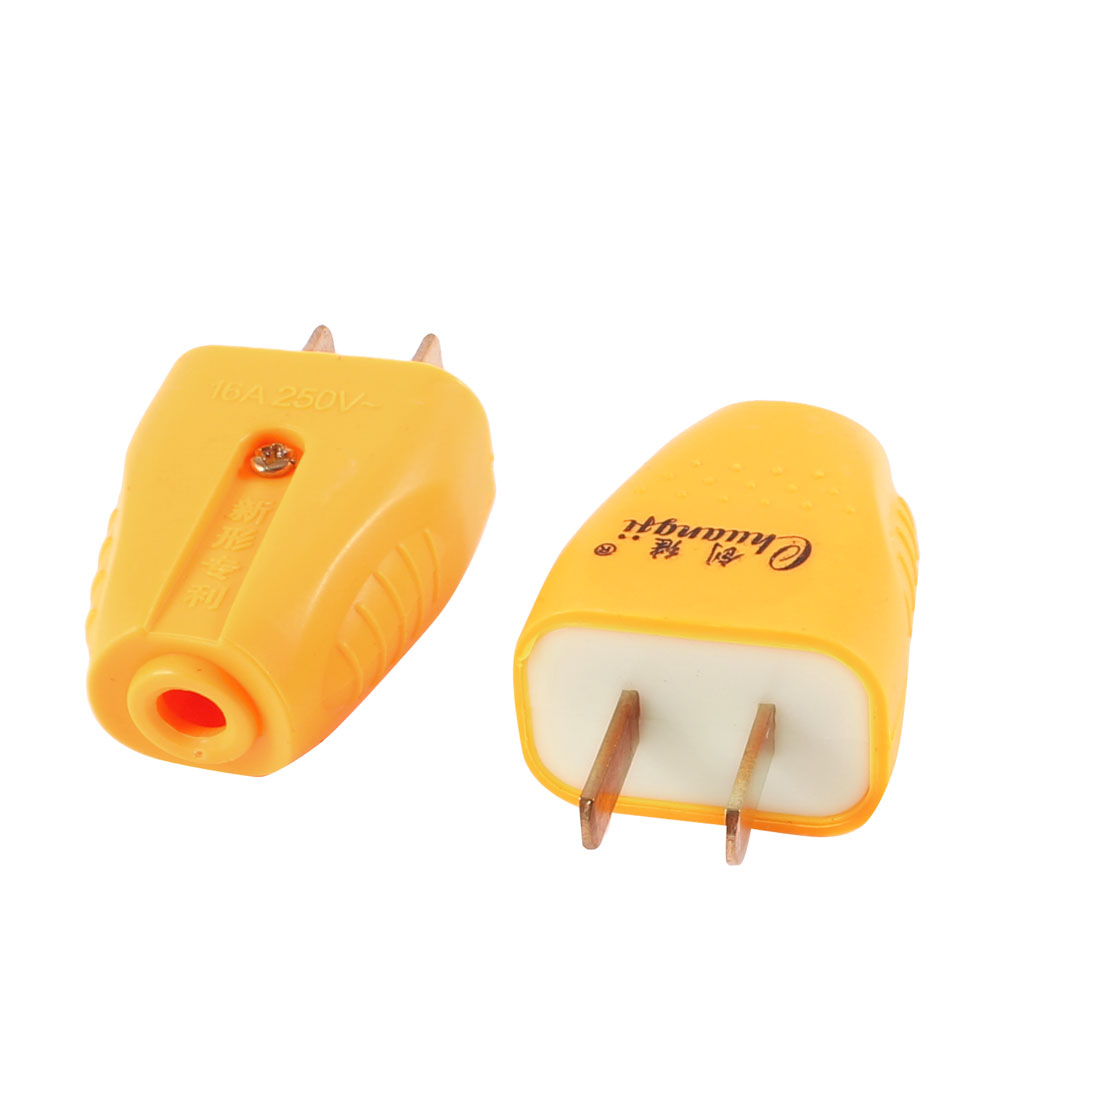 2 Pcs Plastic Housing US 2 Pin Power Plug Connector Replacement 250VAC 16A